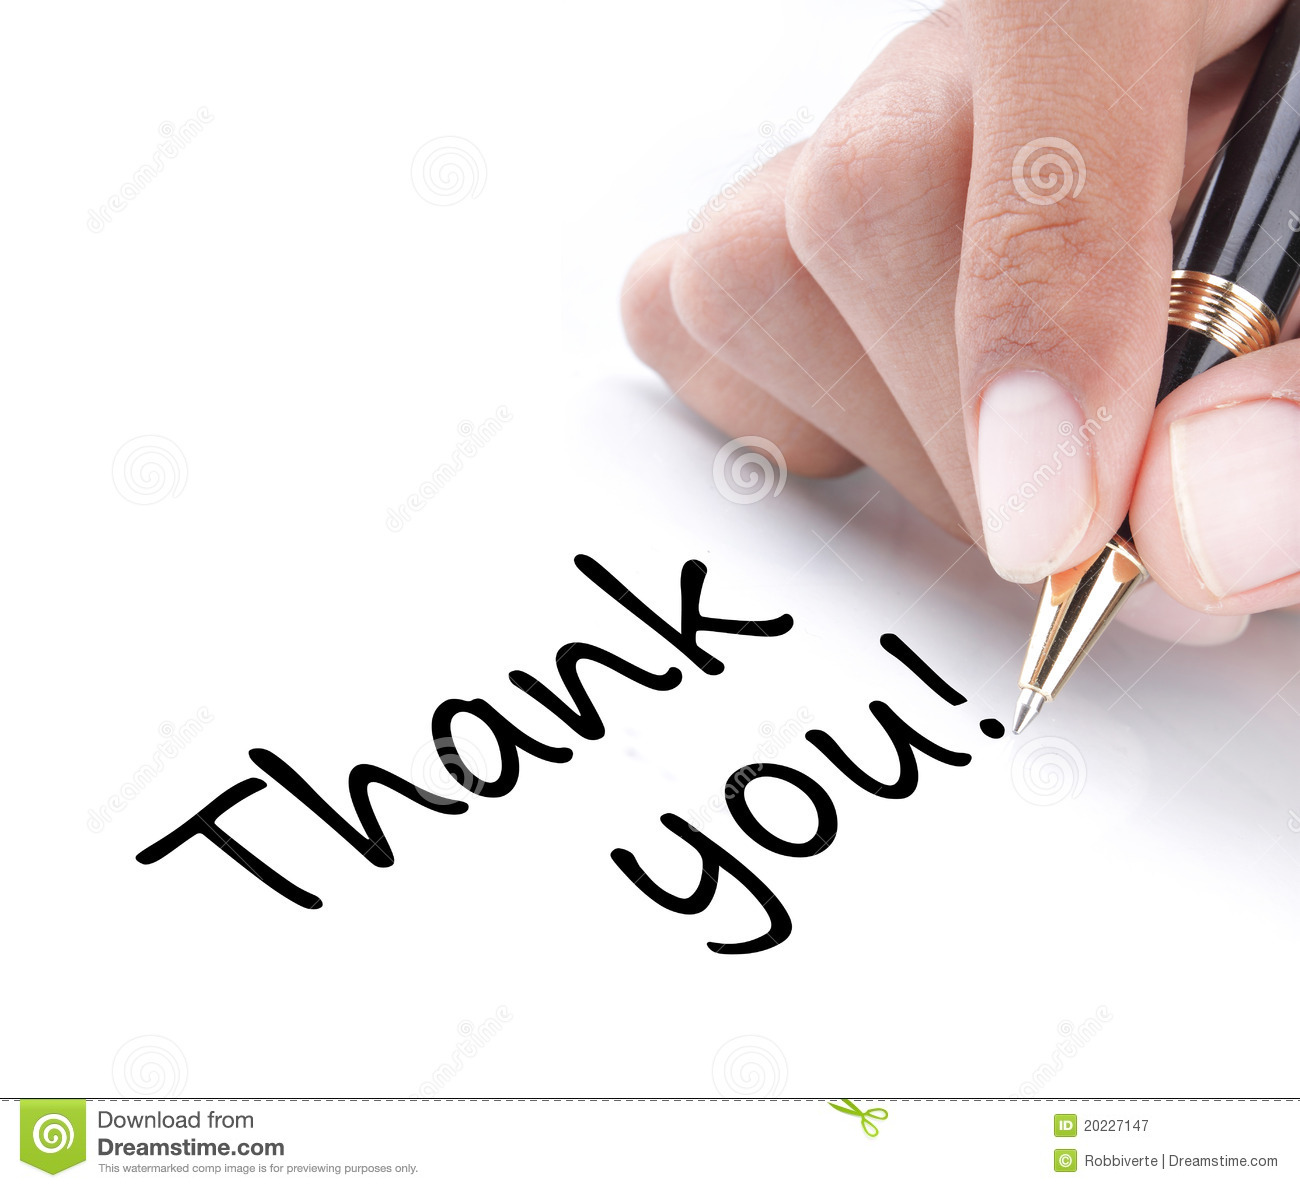 Hand writing thank you stock image image of close Thank you in calligraphy writing